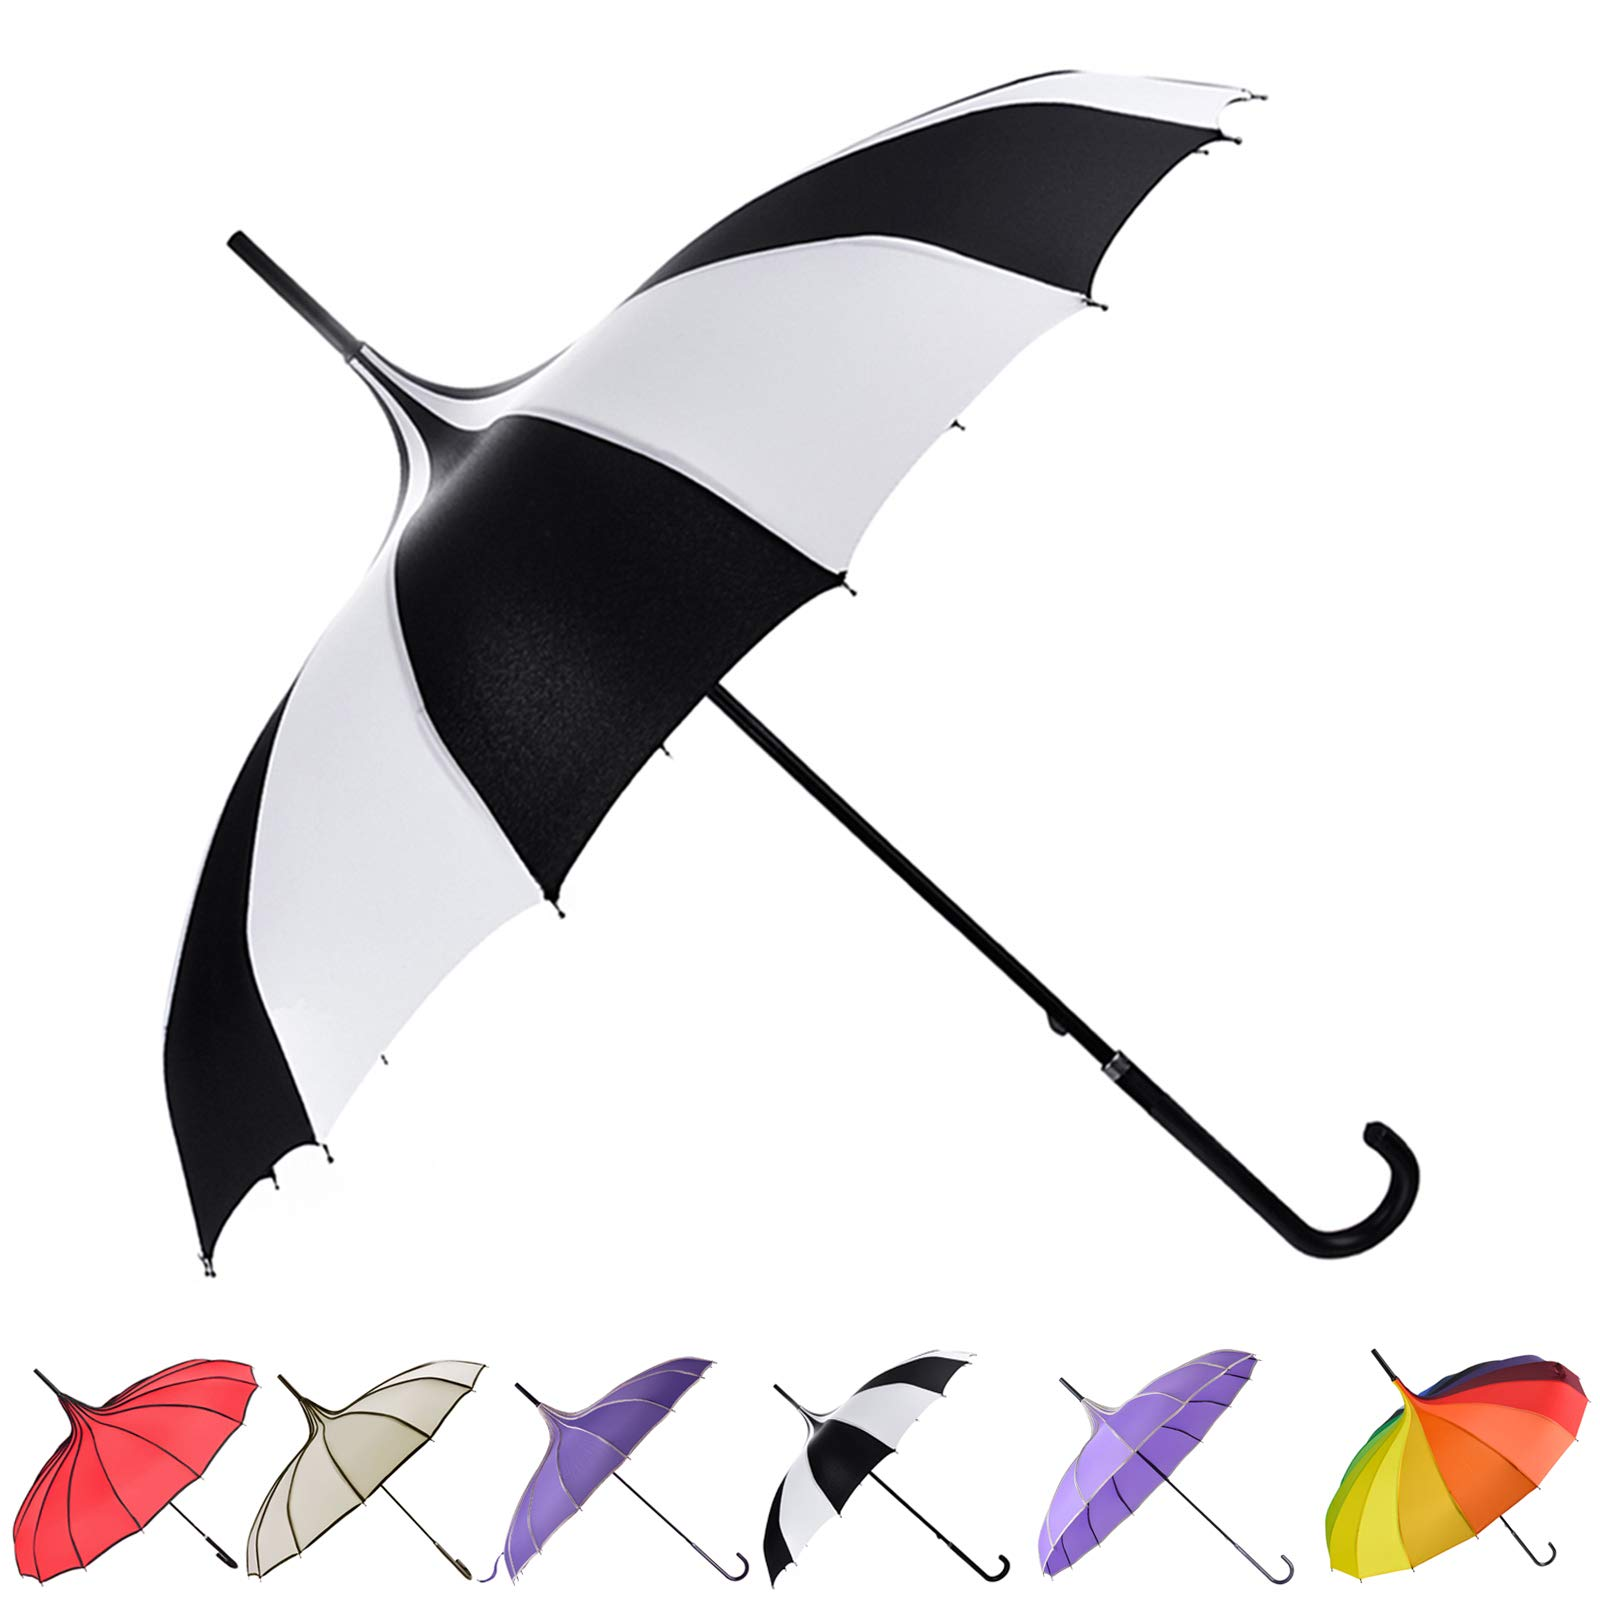 Outgeek Umbrella Retro Pagoda Umbrella Parasol Umbrella Sun Umbrella UV Protection Umbrella Retro with Hook Handle (White & Black) by Outgeek